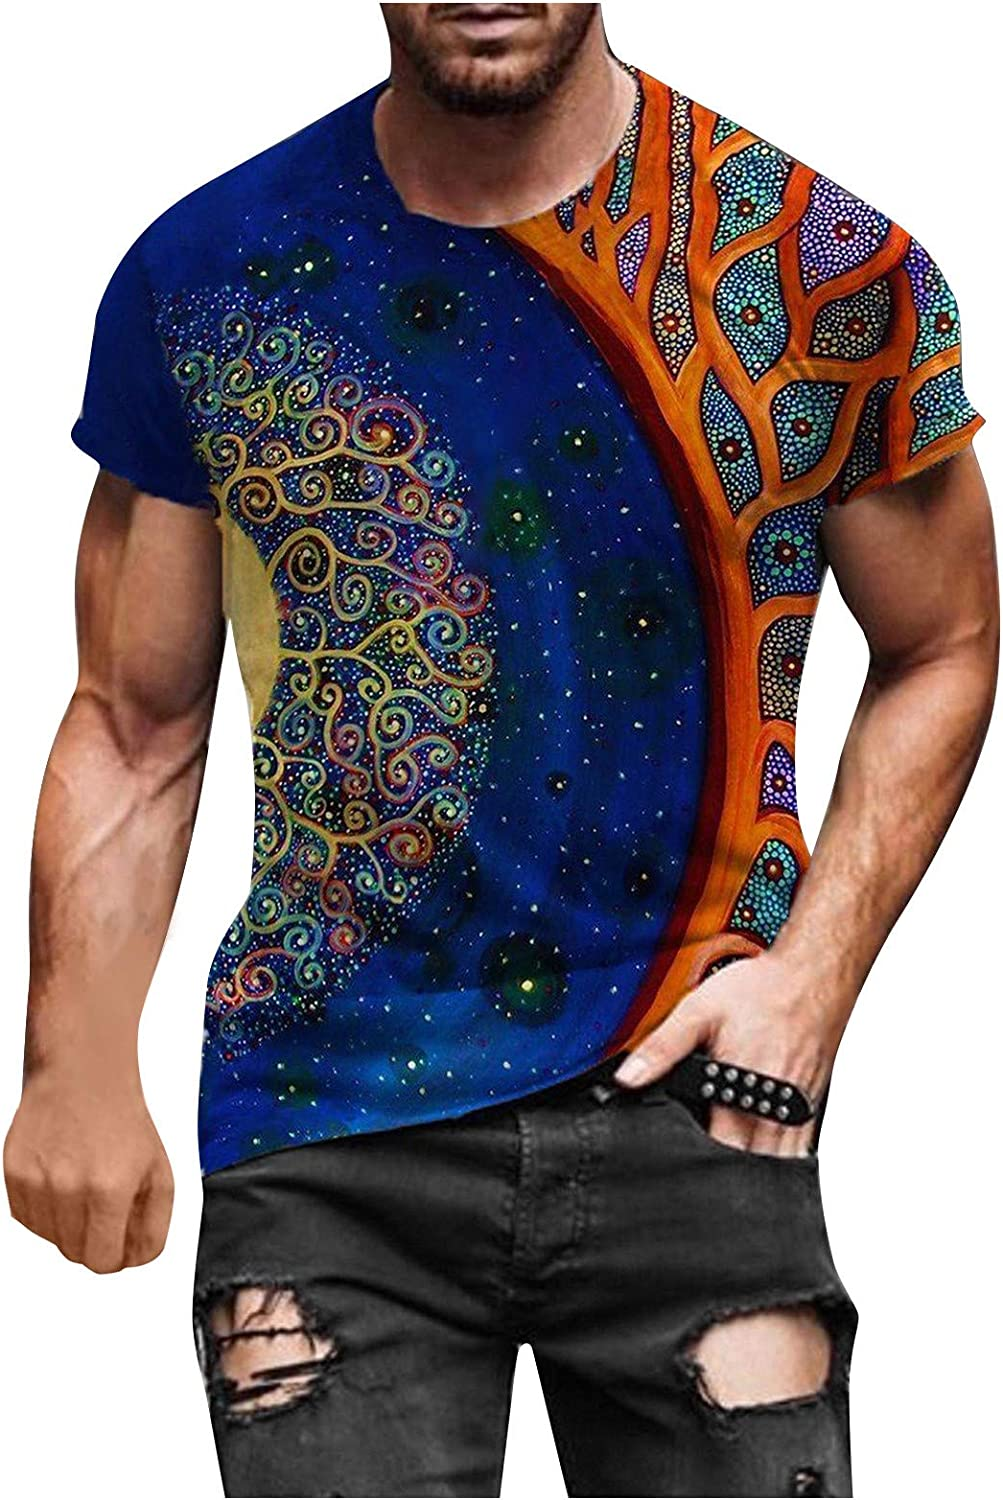 Men Reservation Stylish 3D Printed Sun Moon Short Star S Free shipping anywhere in the nation Graphic Alternation